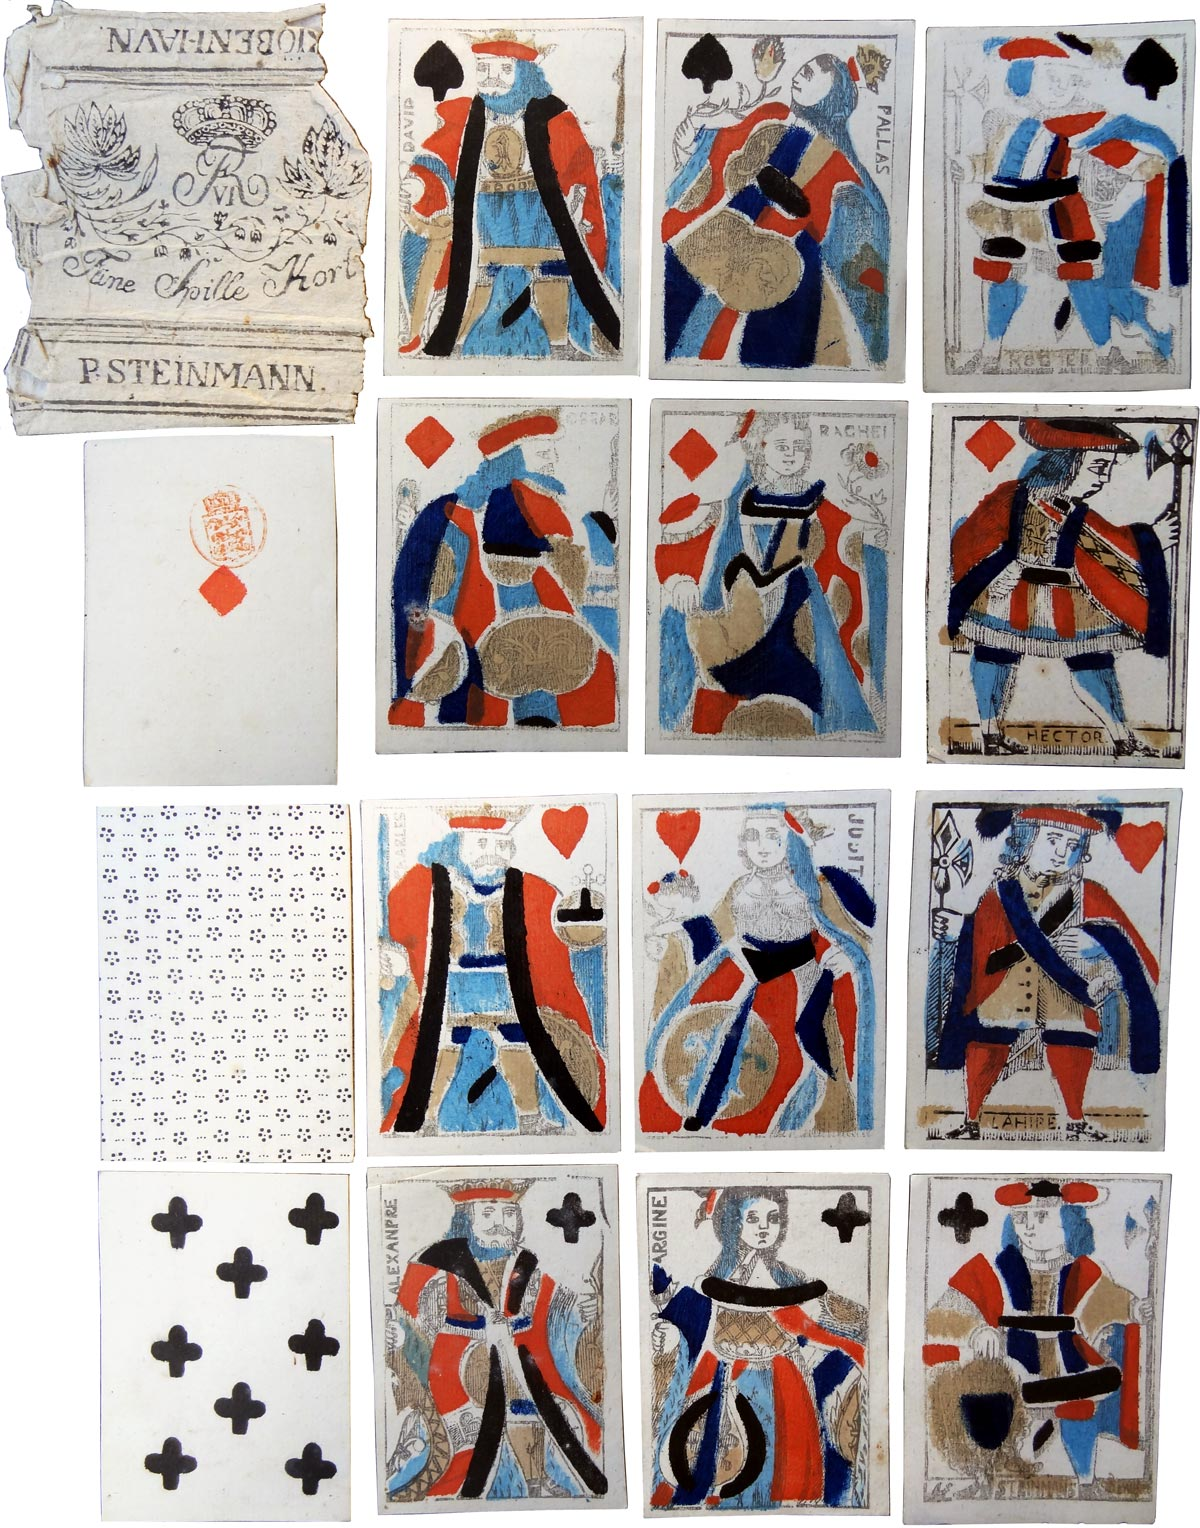 cards in the French style manufactured by P. Steinmann, Copenhagen, c.1810-20